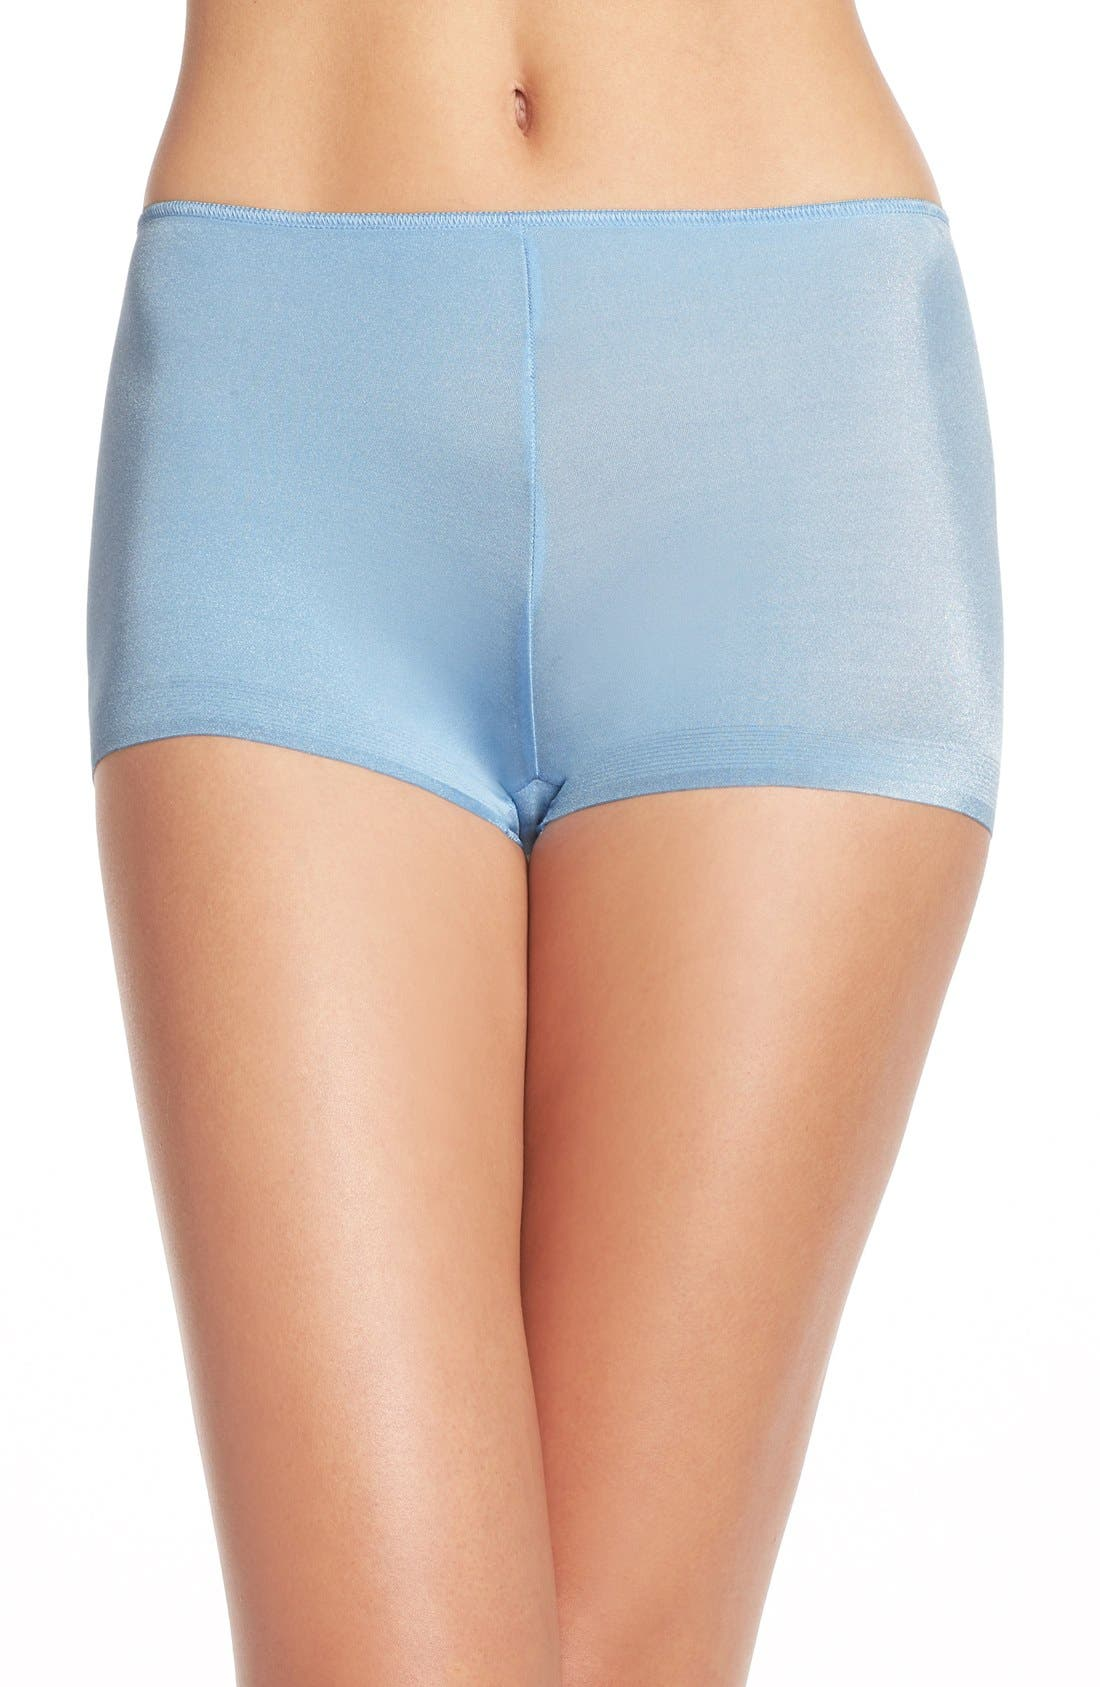 Alternate Image 1 Selected - TC Wonderful Edge® Boyshorts (3 for $39)